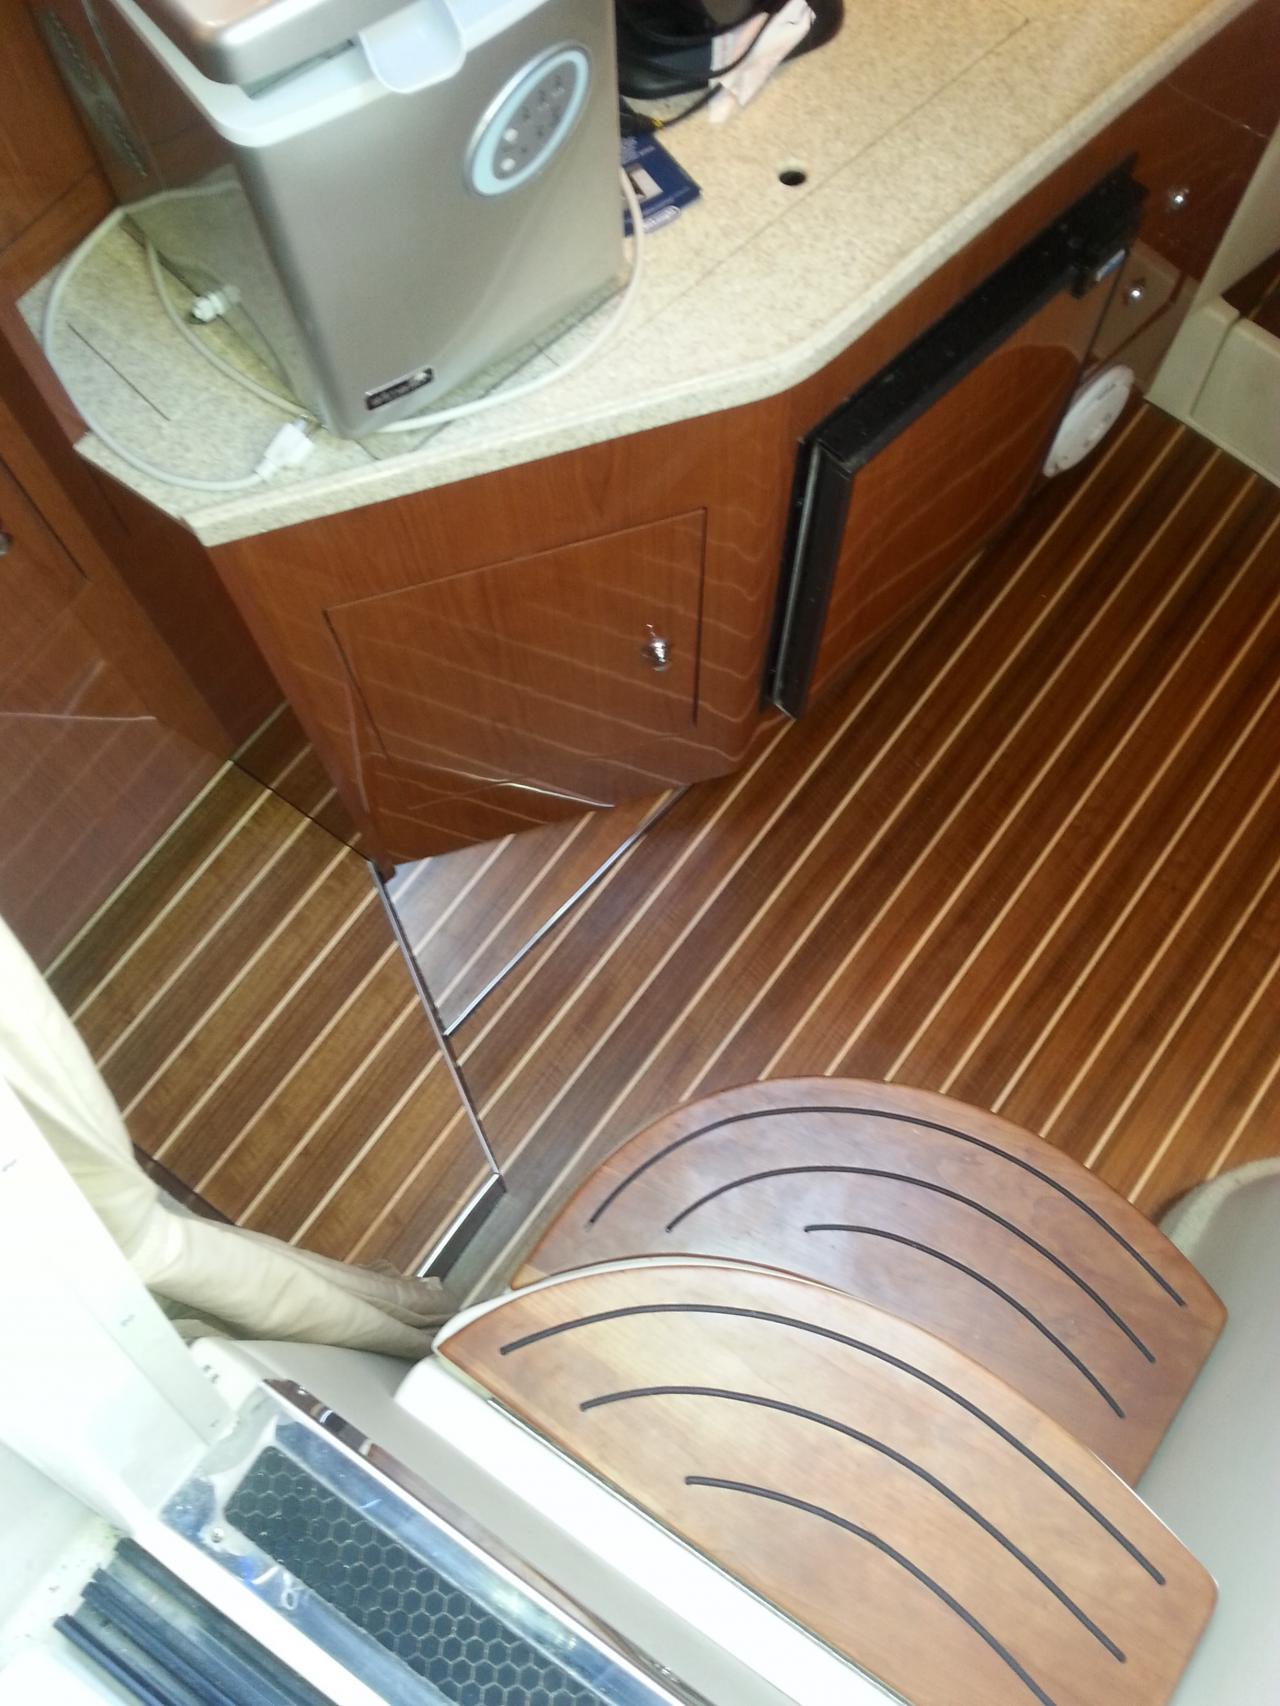 rubber china plastic decking product composite teak boat aqualand flooring xxmqyjpoffre item marine fexible synthetic floor flexible hot